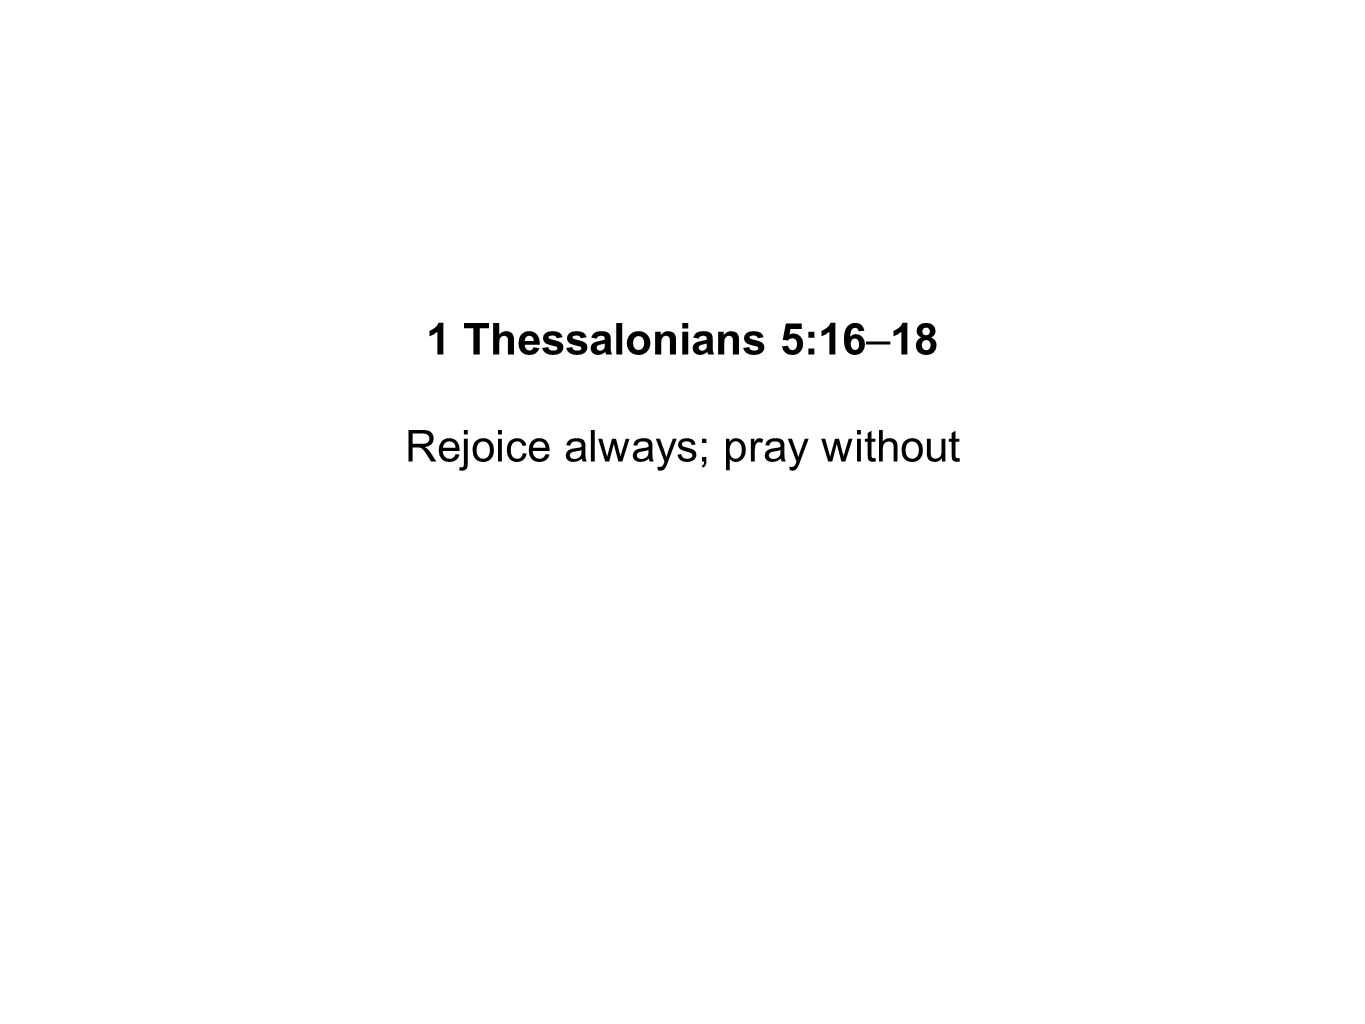 Rejoice always; pray without